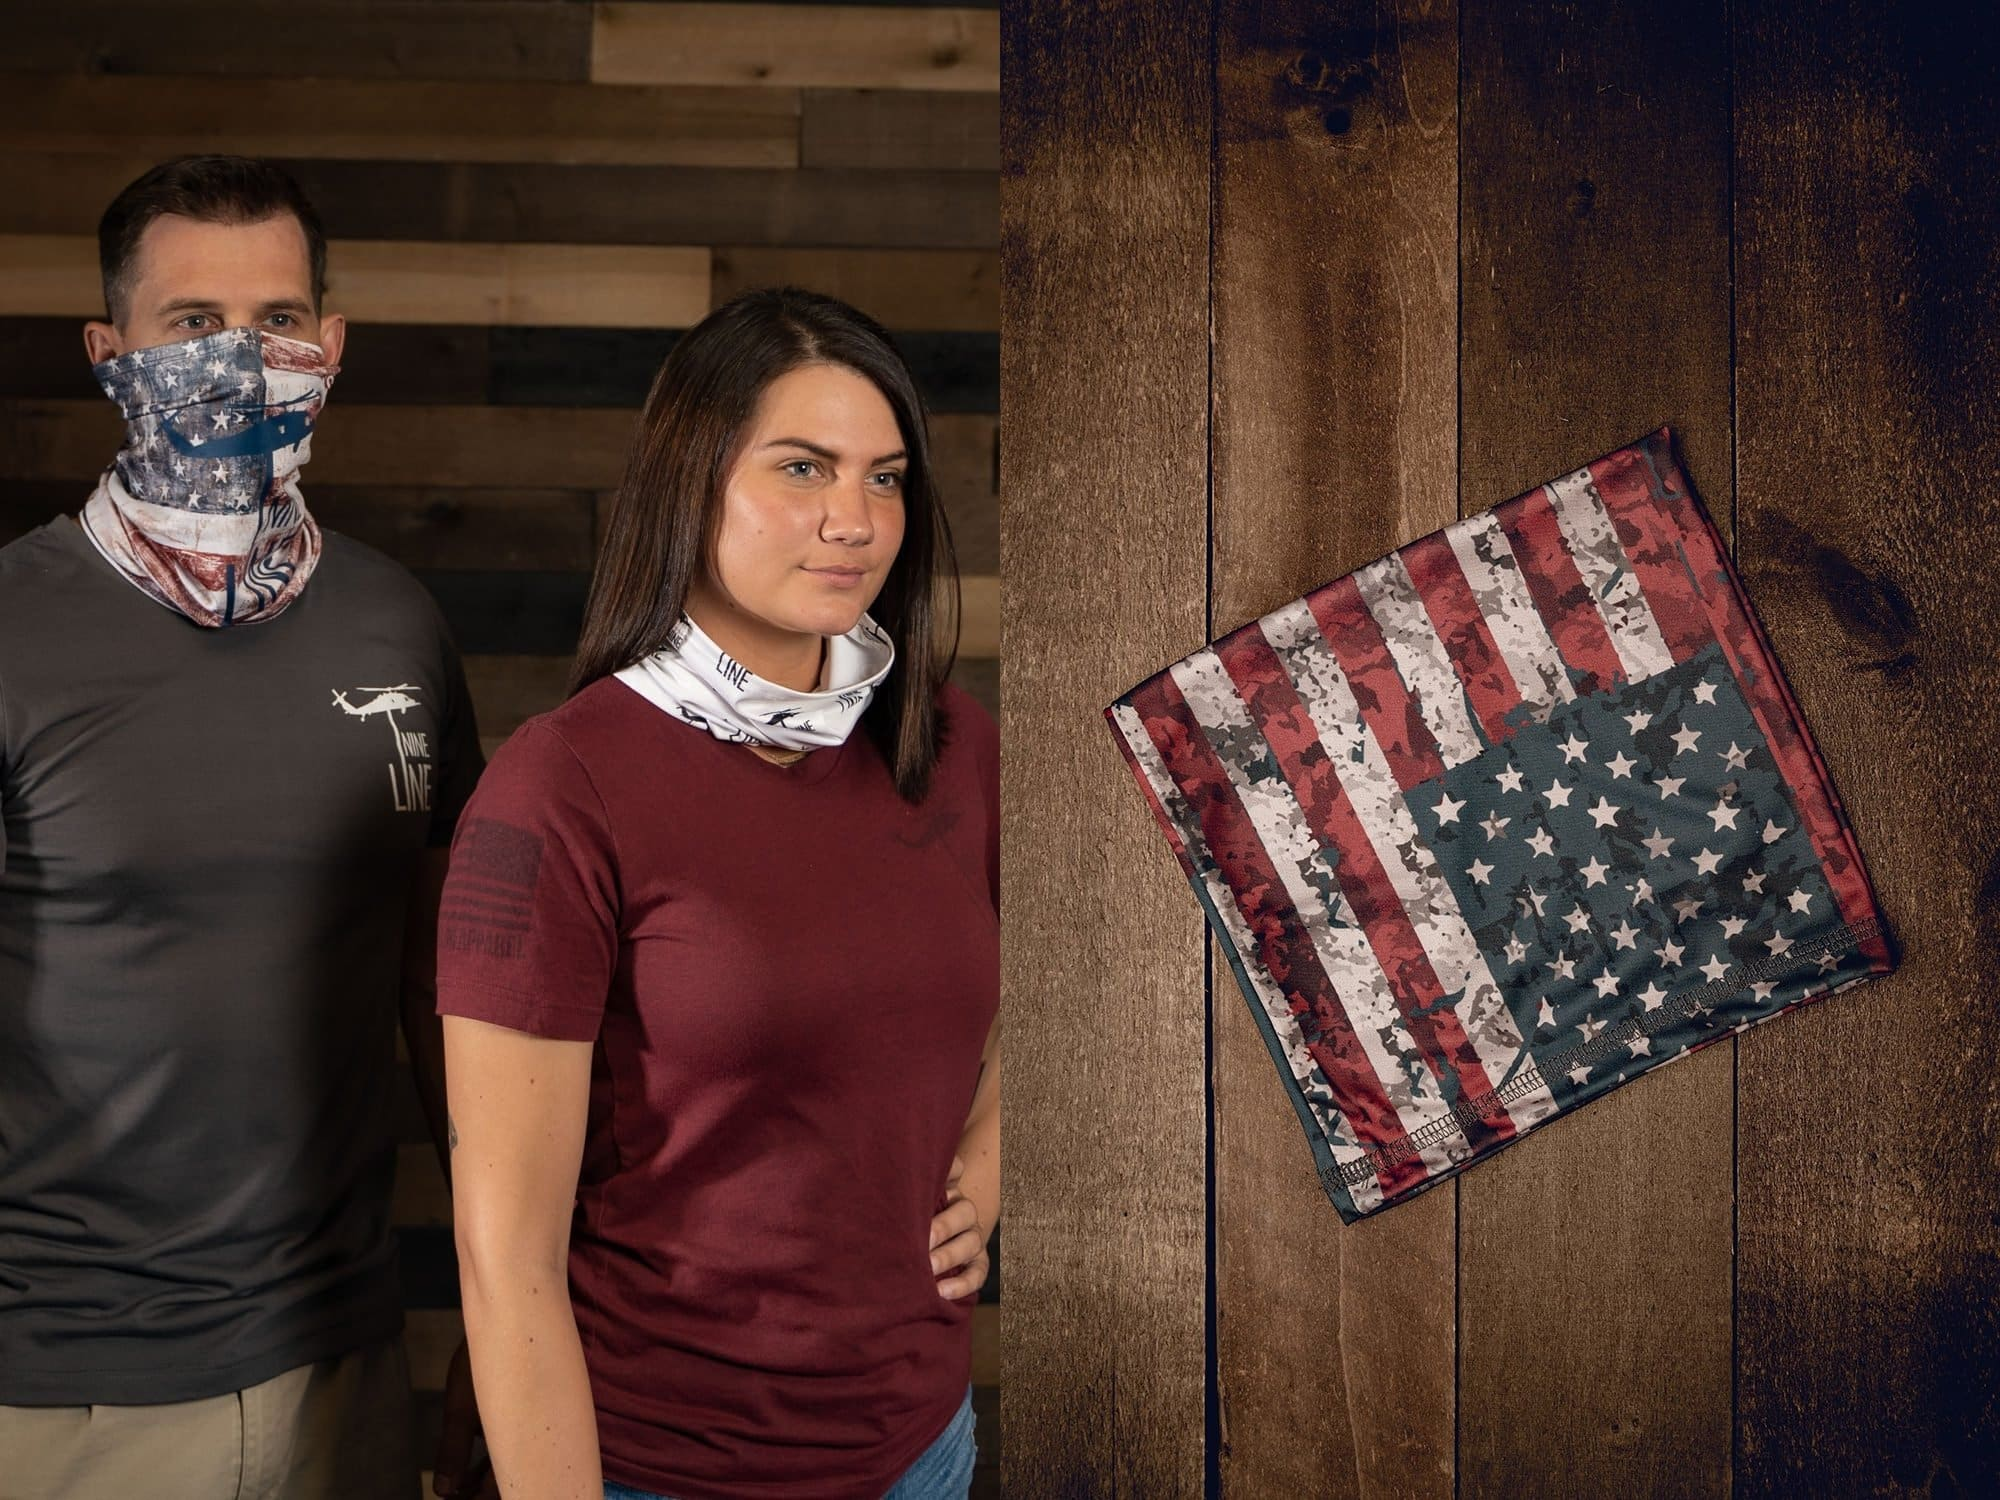 Excellent for indoor use as a quick face cover to reduce the spread of germs, and for the outdoors as a headband, neck cover, dust cover, and more